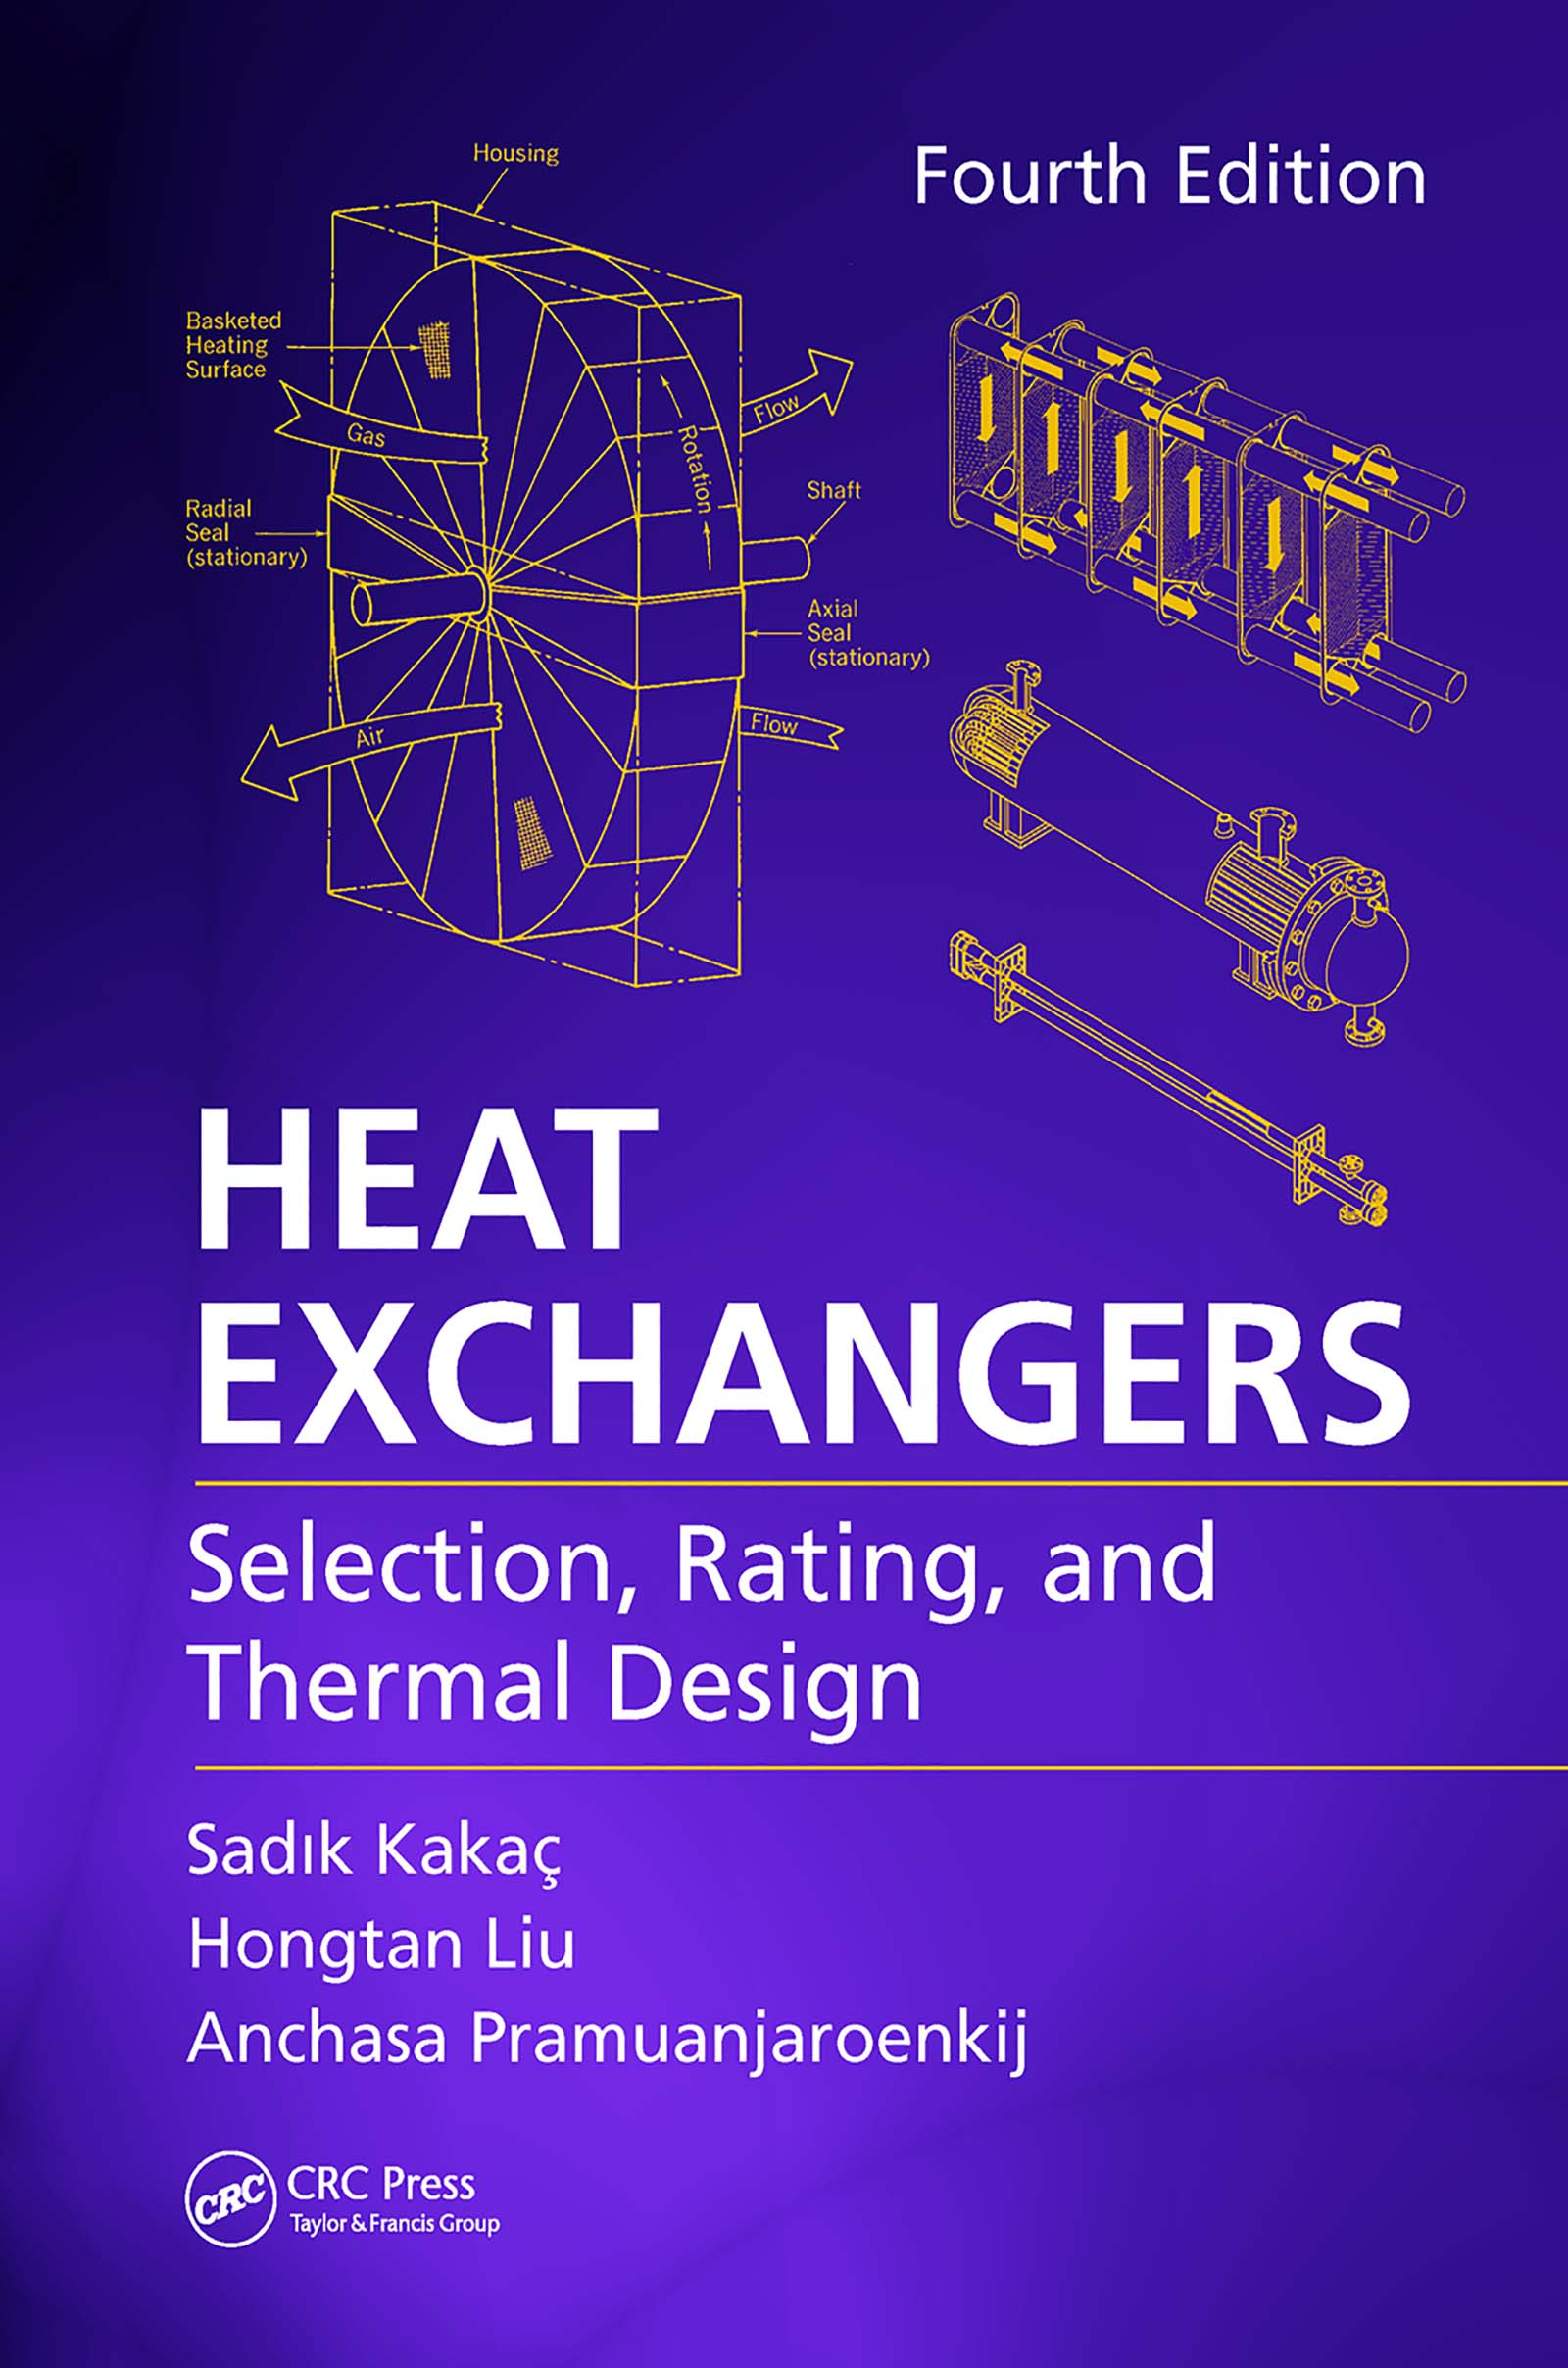 Heat Exchangers: Selection, Rating, and Thermal Design, Fourth Edition book cover